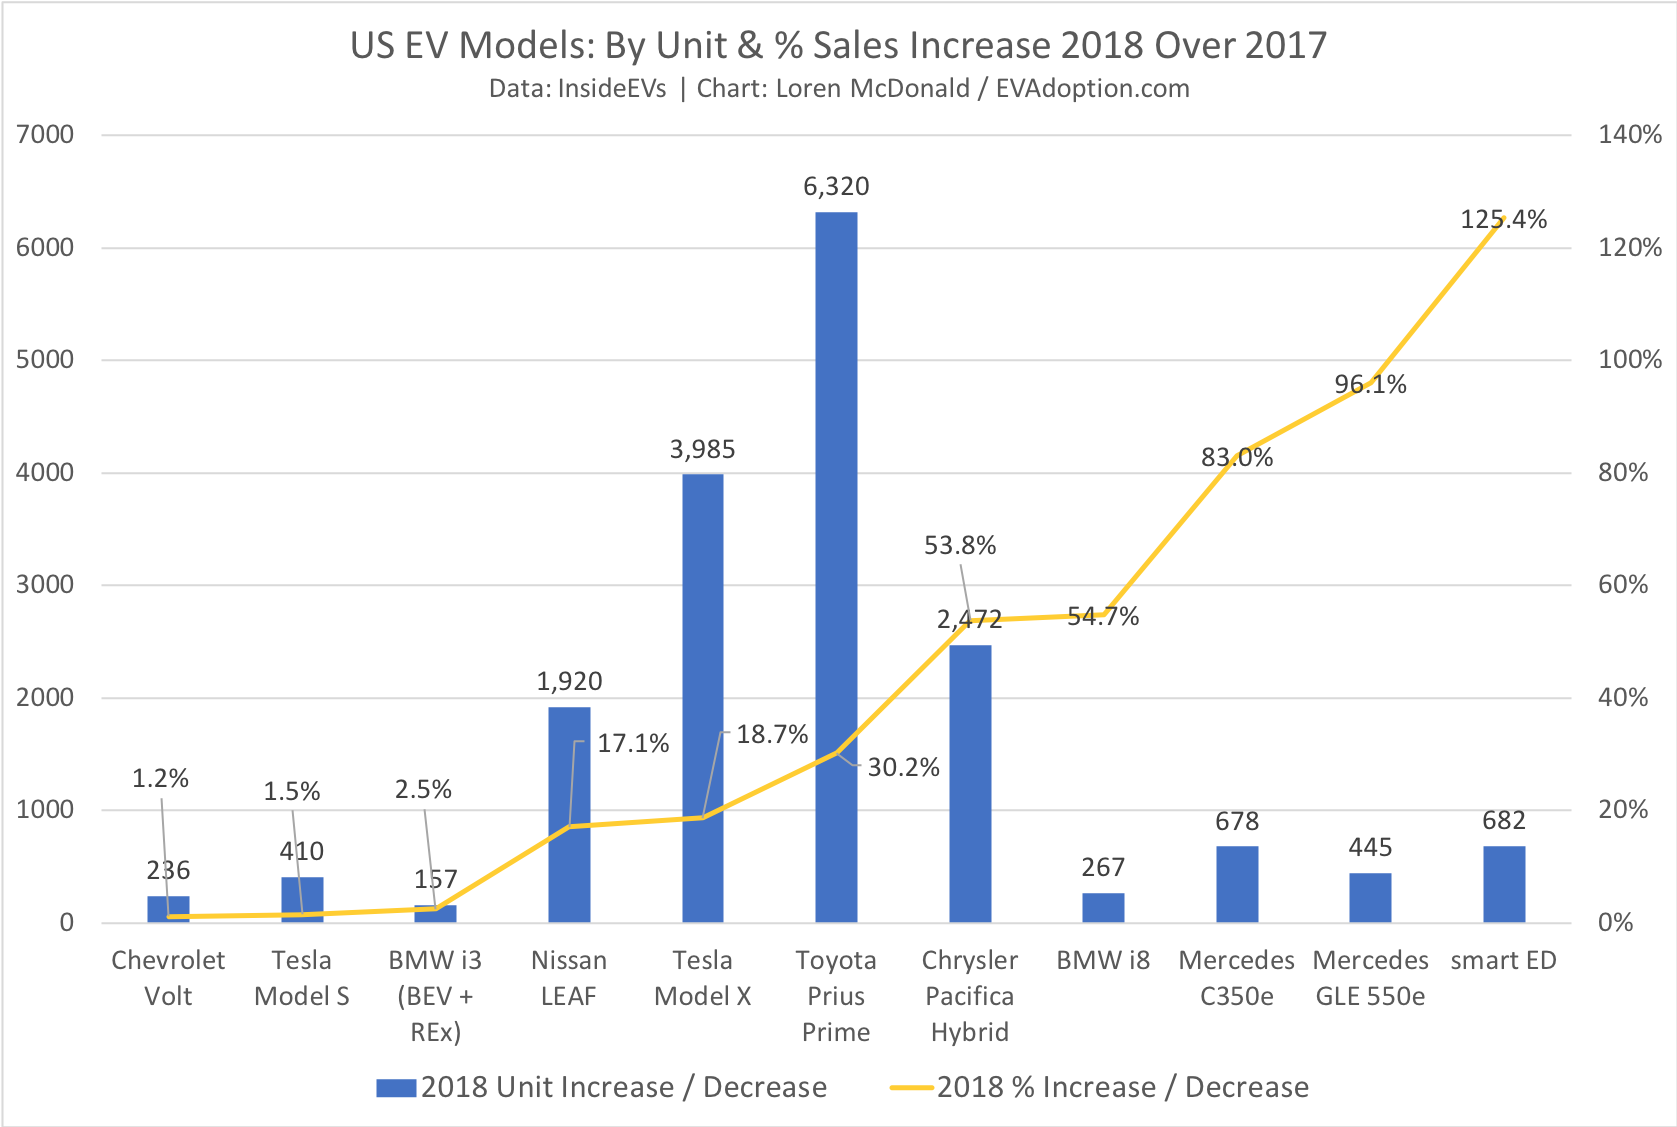 EVs With Sales Increases 2018 vs 2017-CT